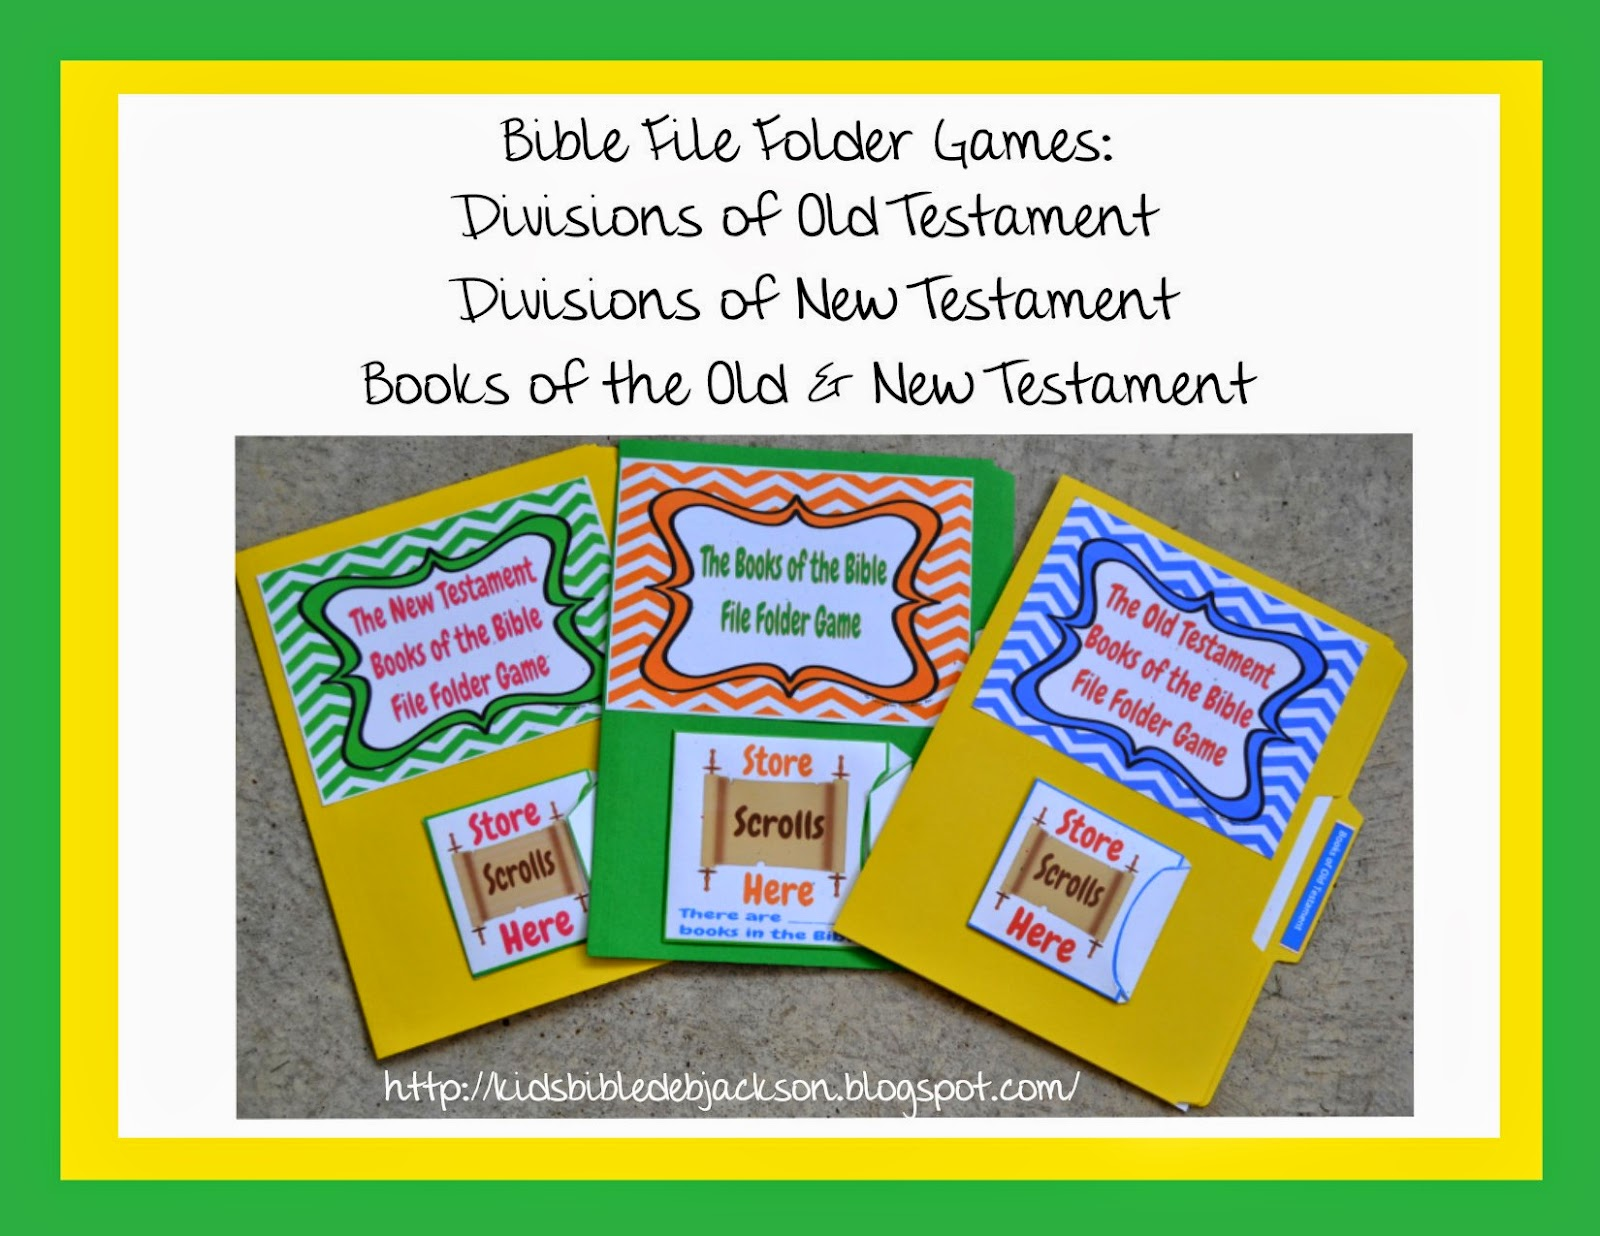 http://kidsbibledebjackson.blogspot.com/2014/06/bible-file-folder-games.html